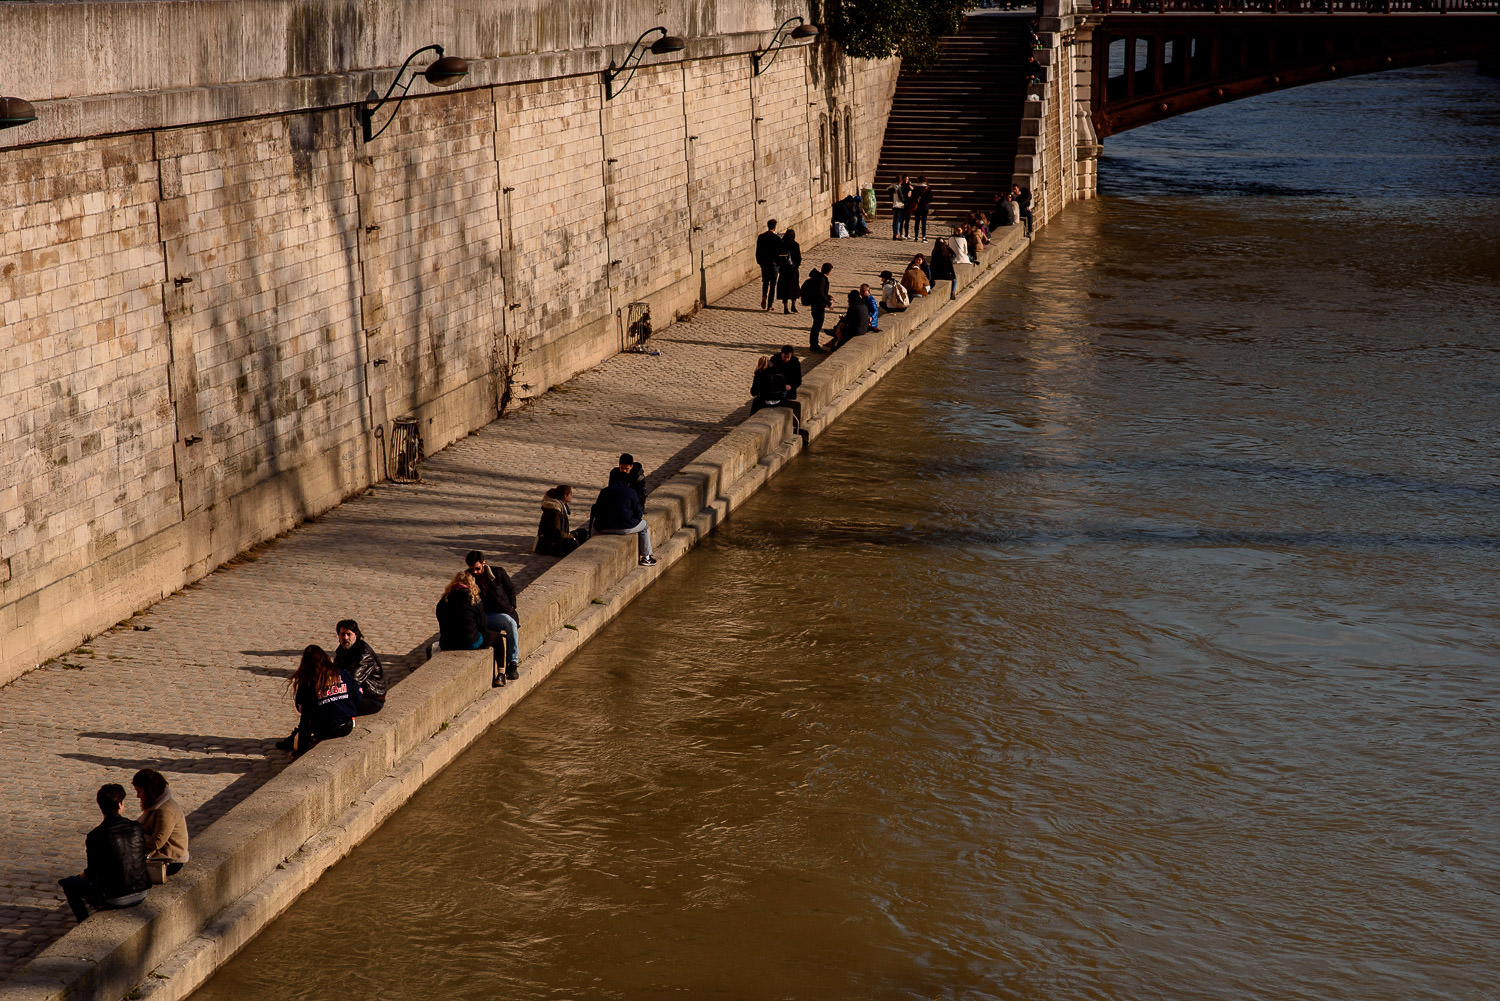 People sunbathing on the banks of river Saine in Paris